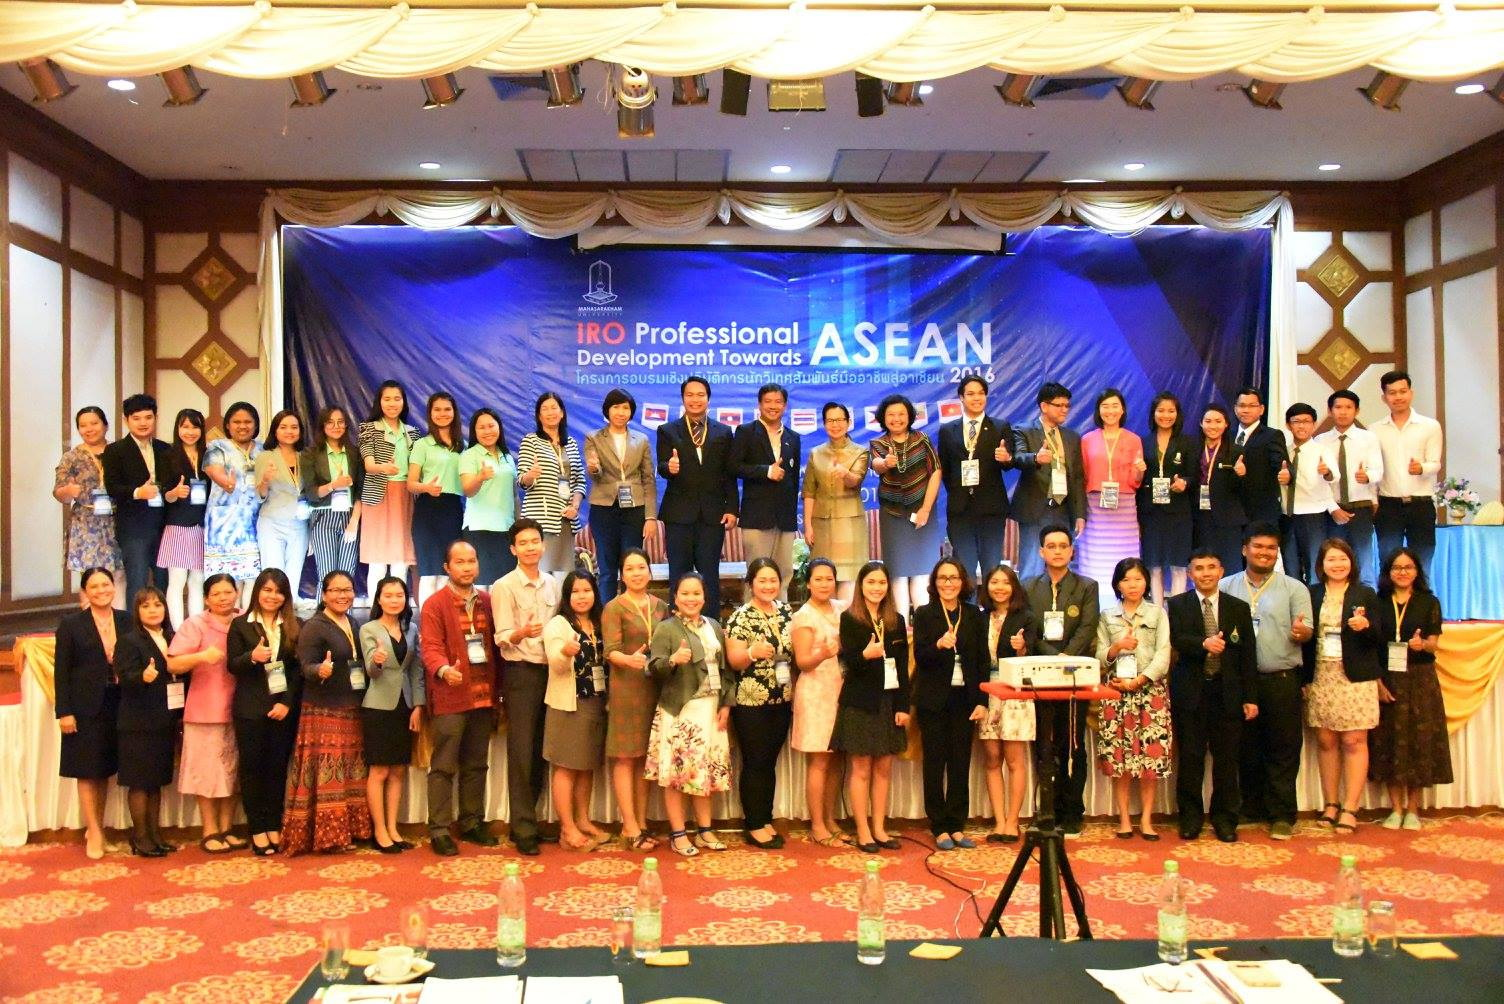 MSU Seminar on IRO Professional Development Towards ASEAN 201